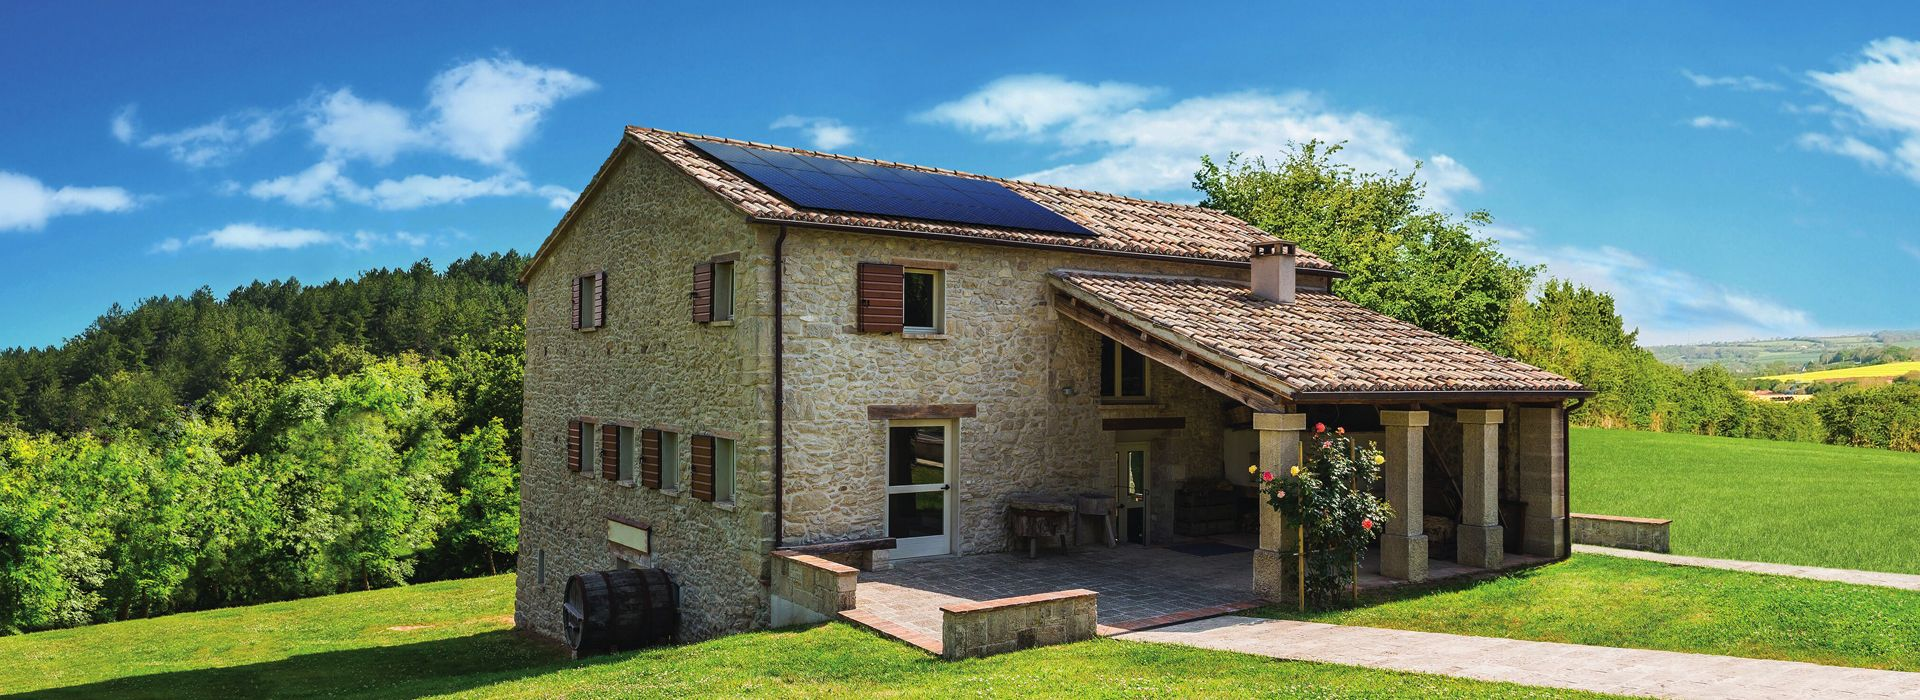 solar panels on home in Italy